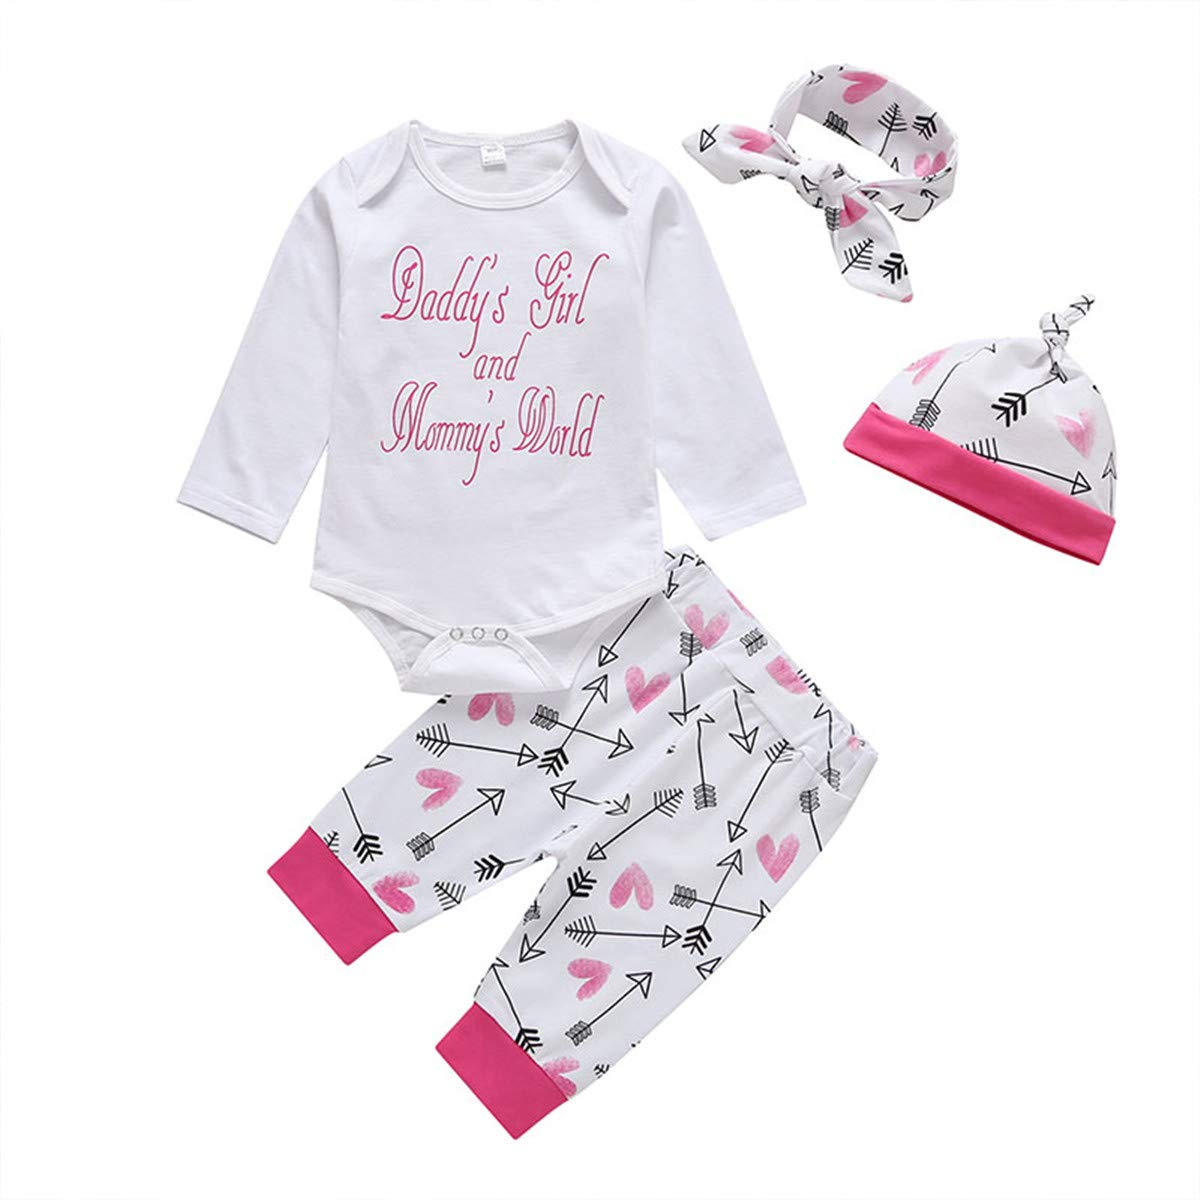 4 pcs Baby Girls Newborn Infant Toddler Clothes 6-12 Months Arrow Heart Pants